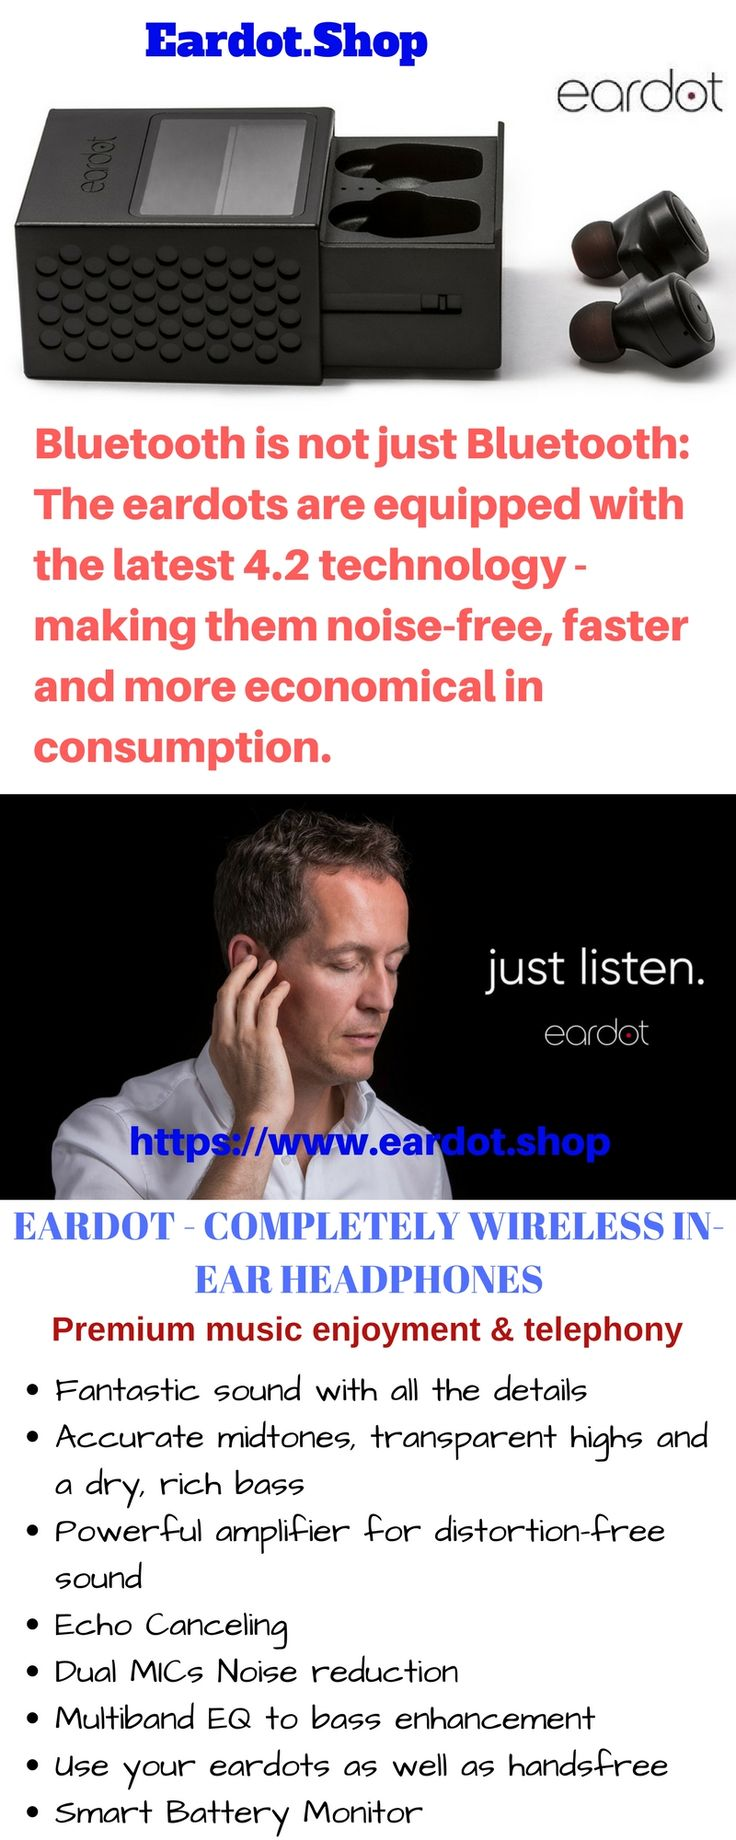 Buy best selling wireless in-ear Bluetooth headphones online without cable available in market only on https://www.eardot.shop/. Equipped with latest Bluetooth 4.2 Technology and unique design we provide in-ear headphones with excellent connectivity. #BuyWirelessInEarHeadphones